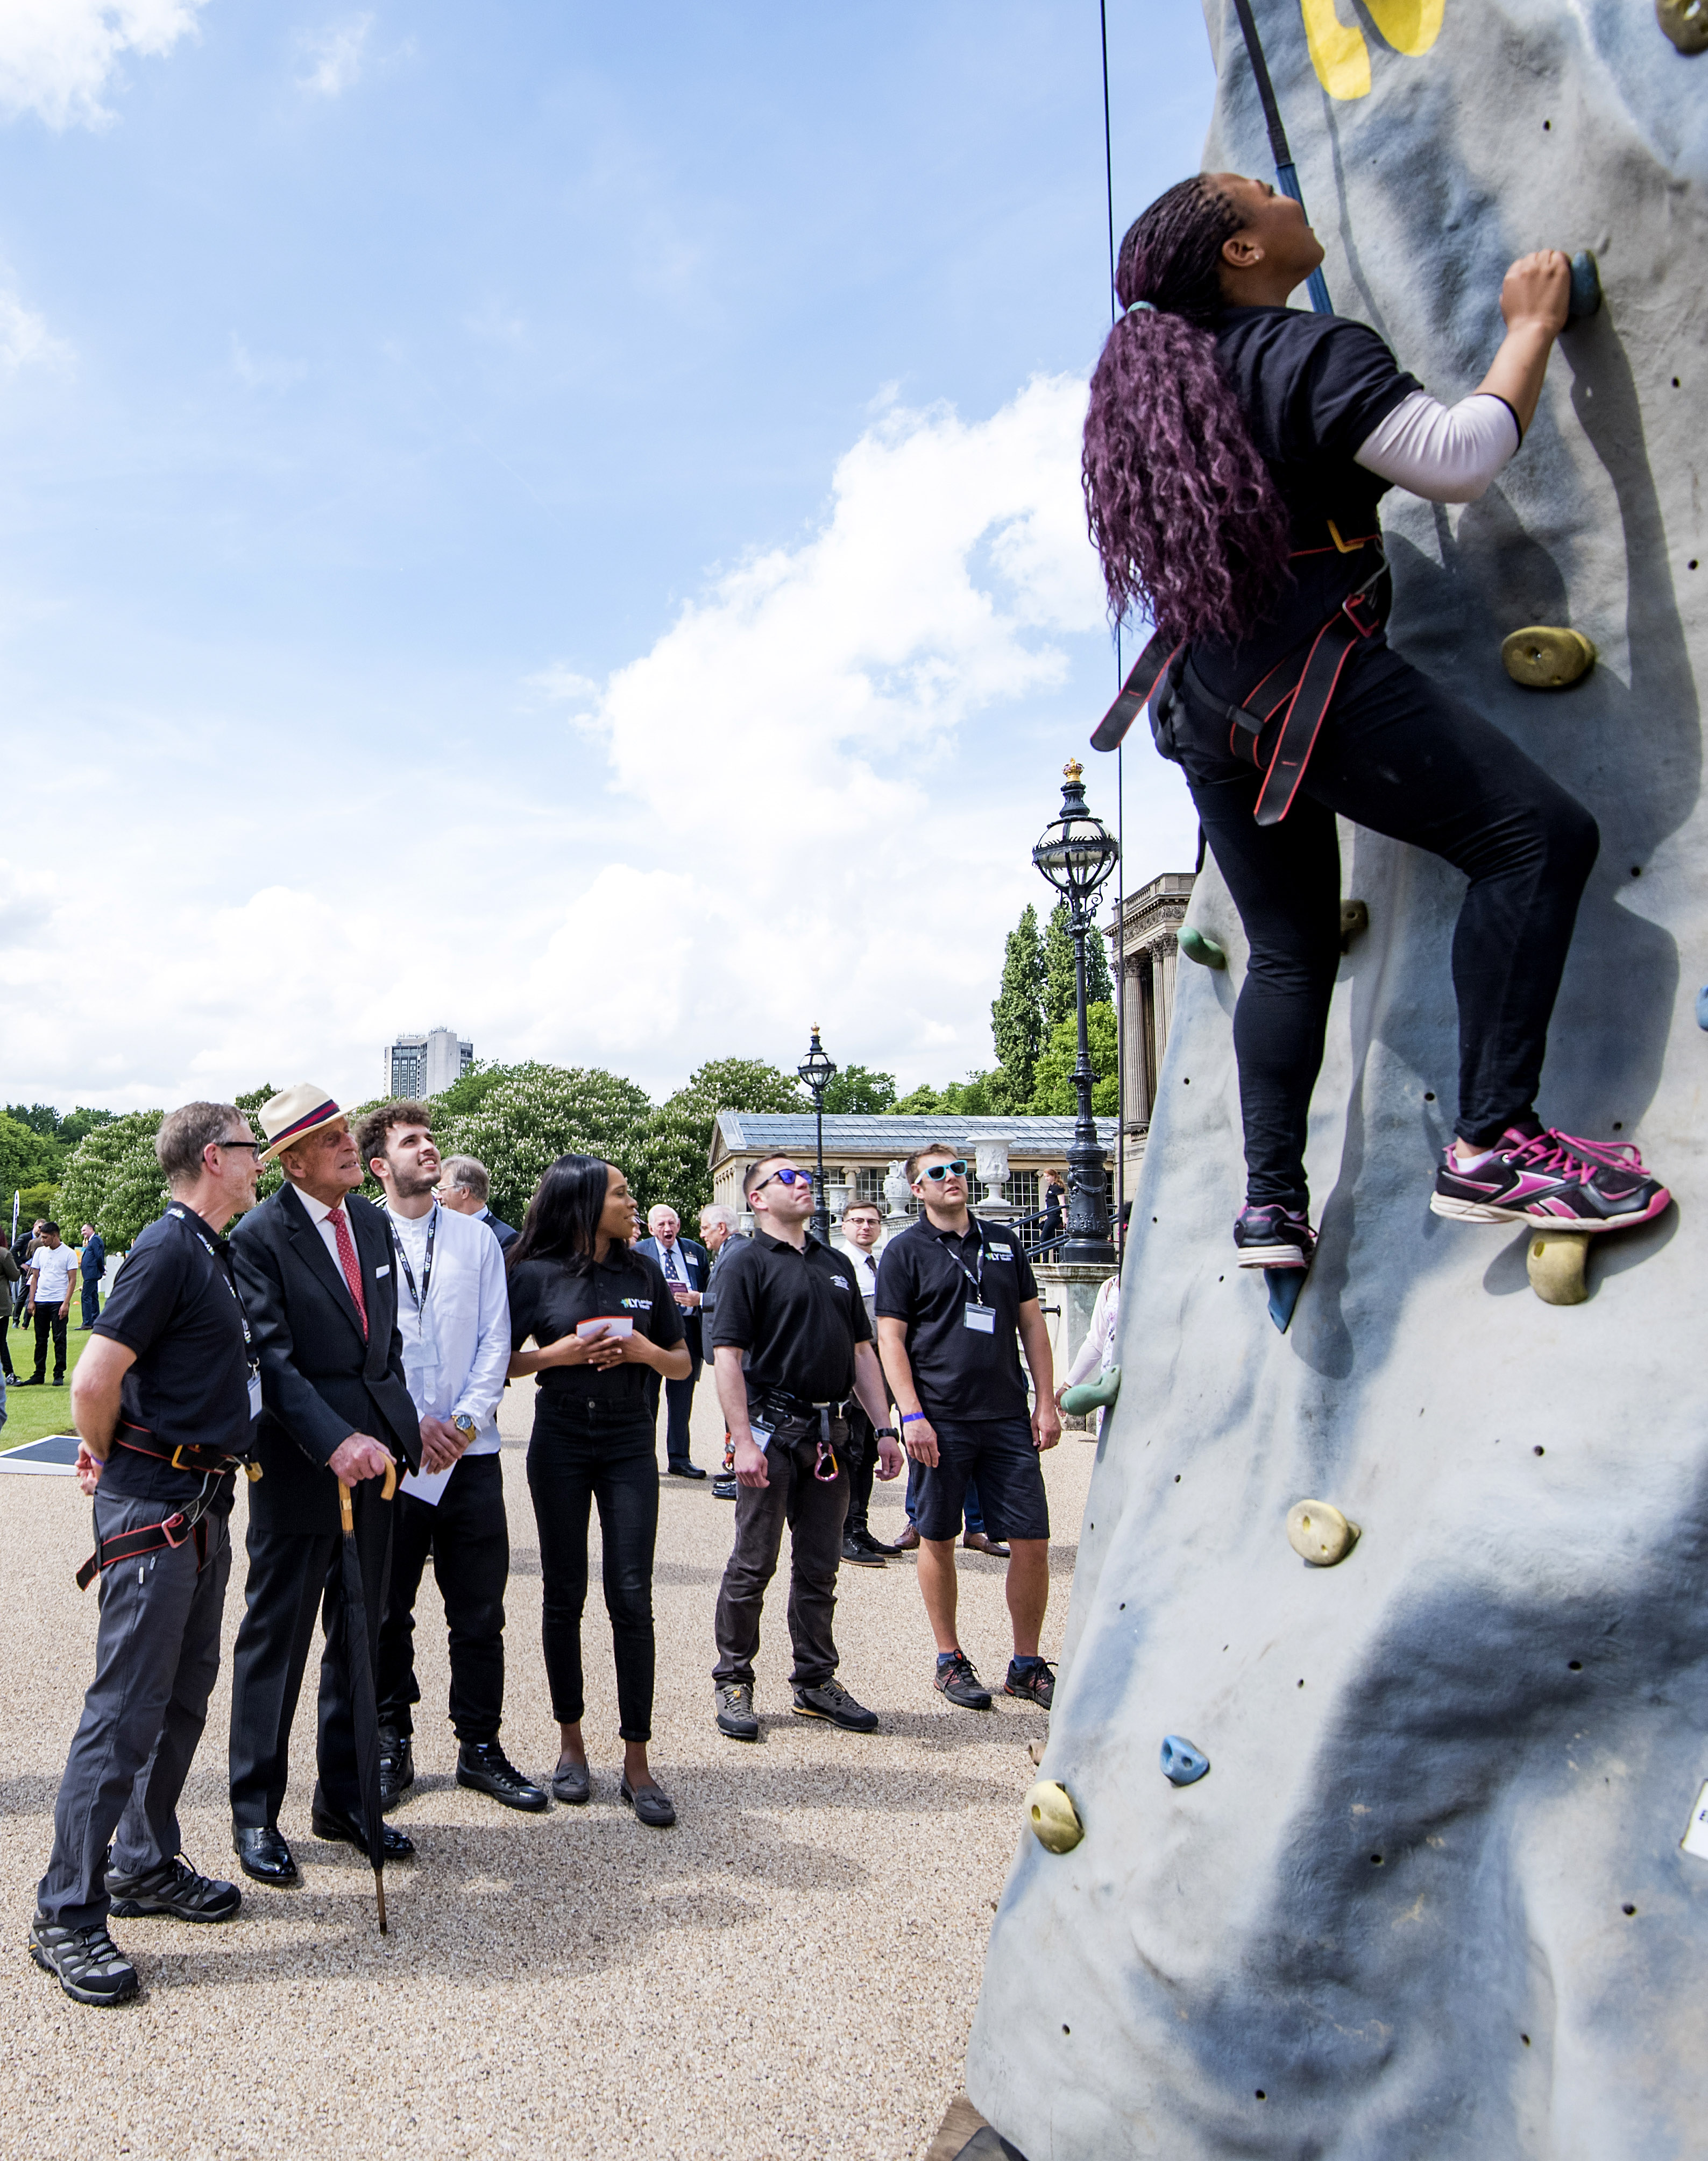 Prince Philip stands by a rock climbing wall